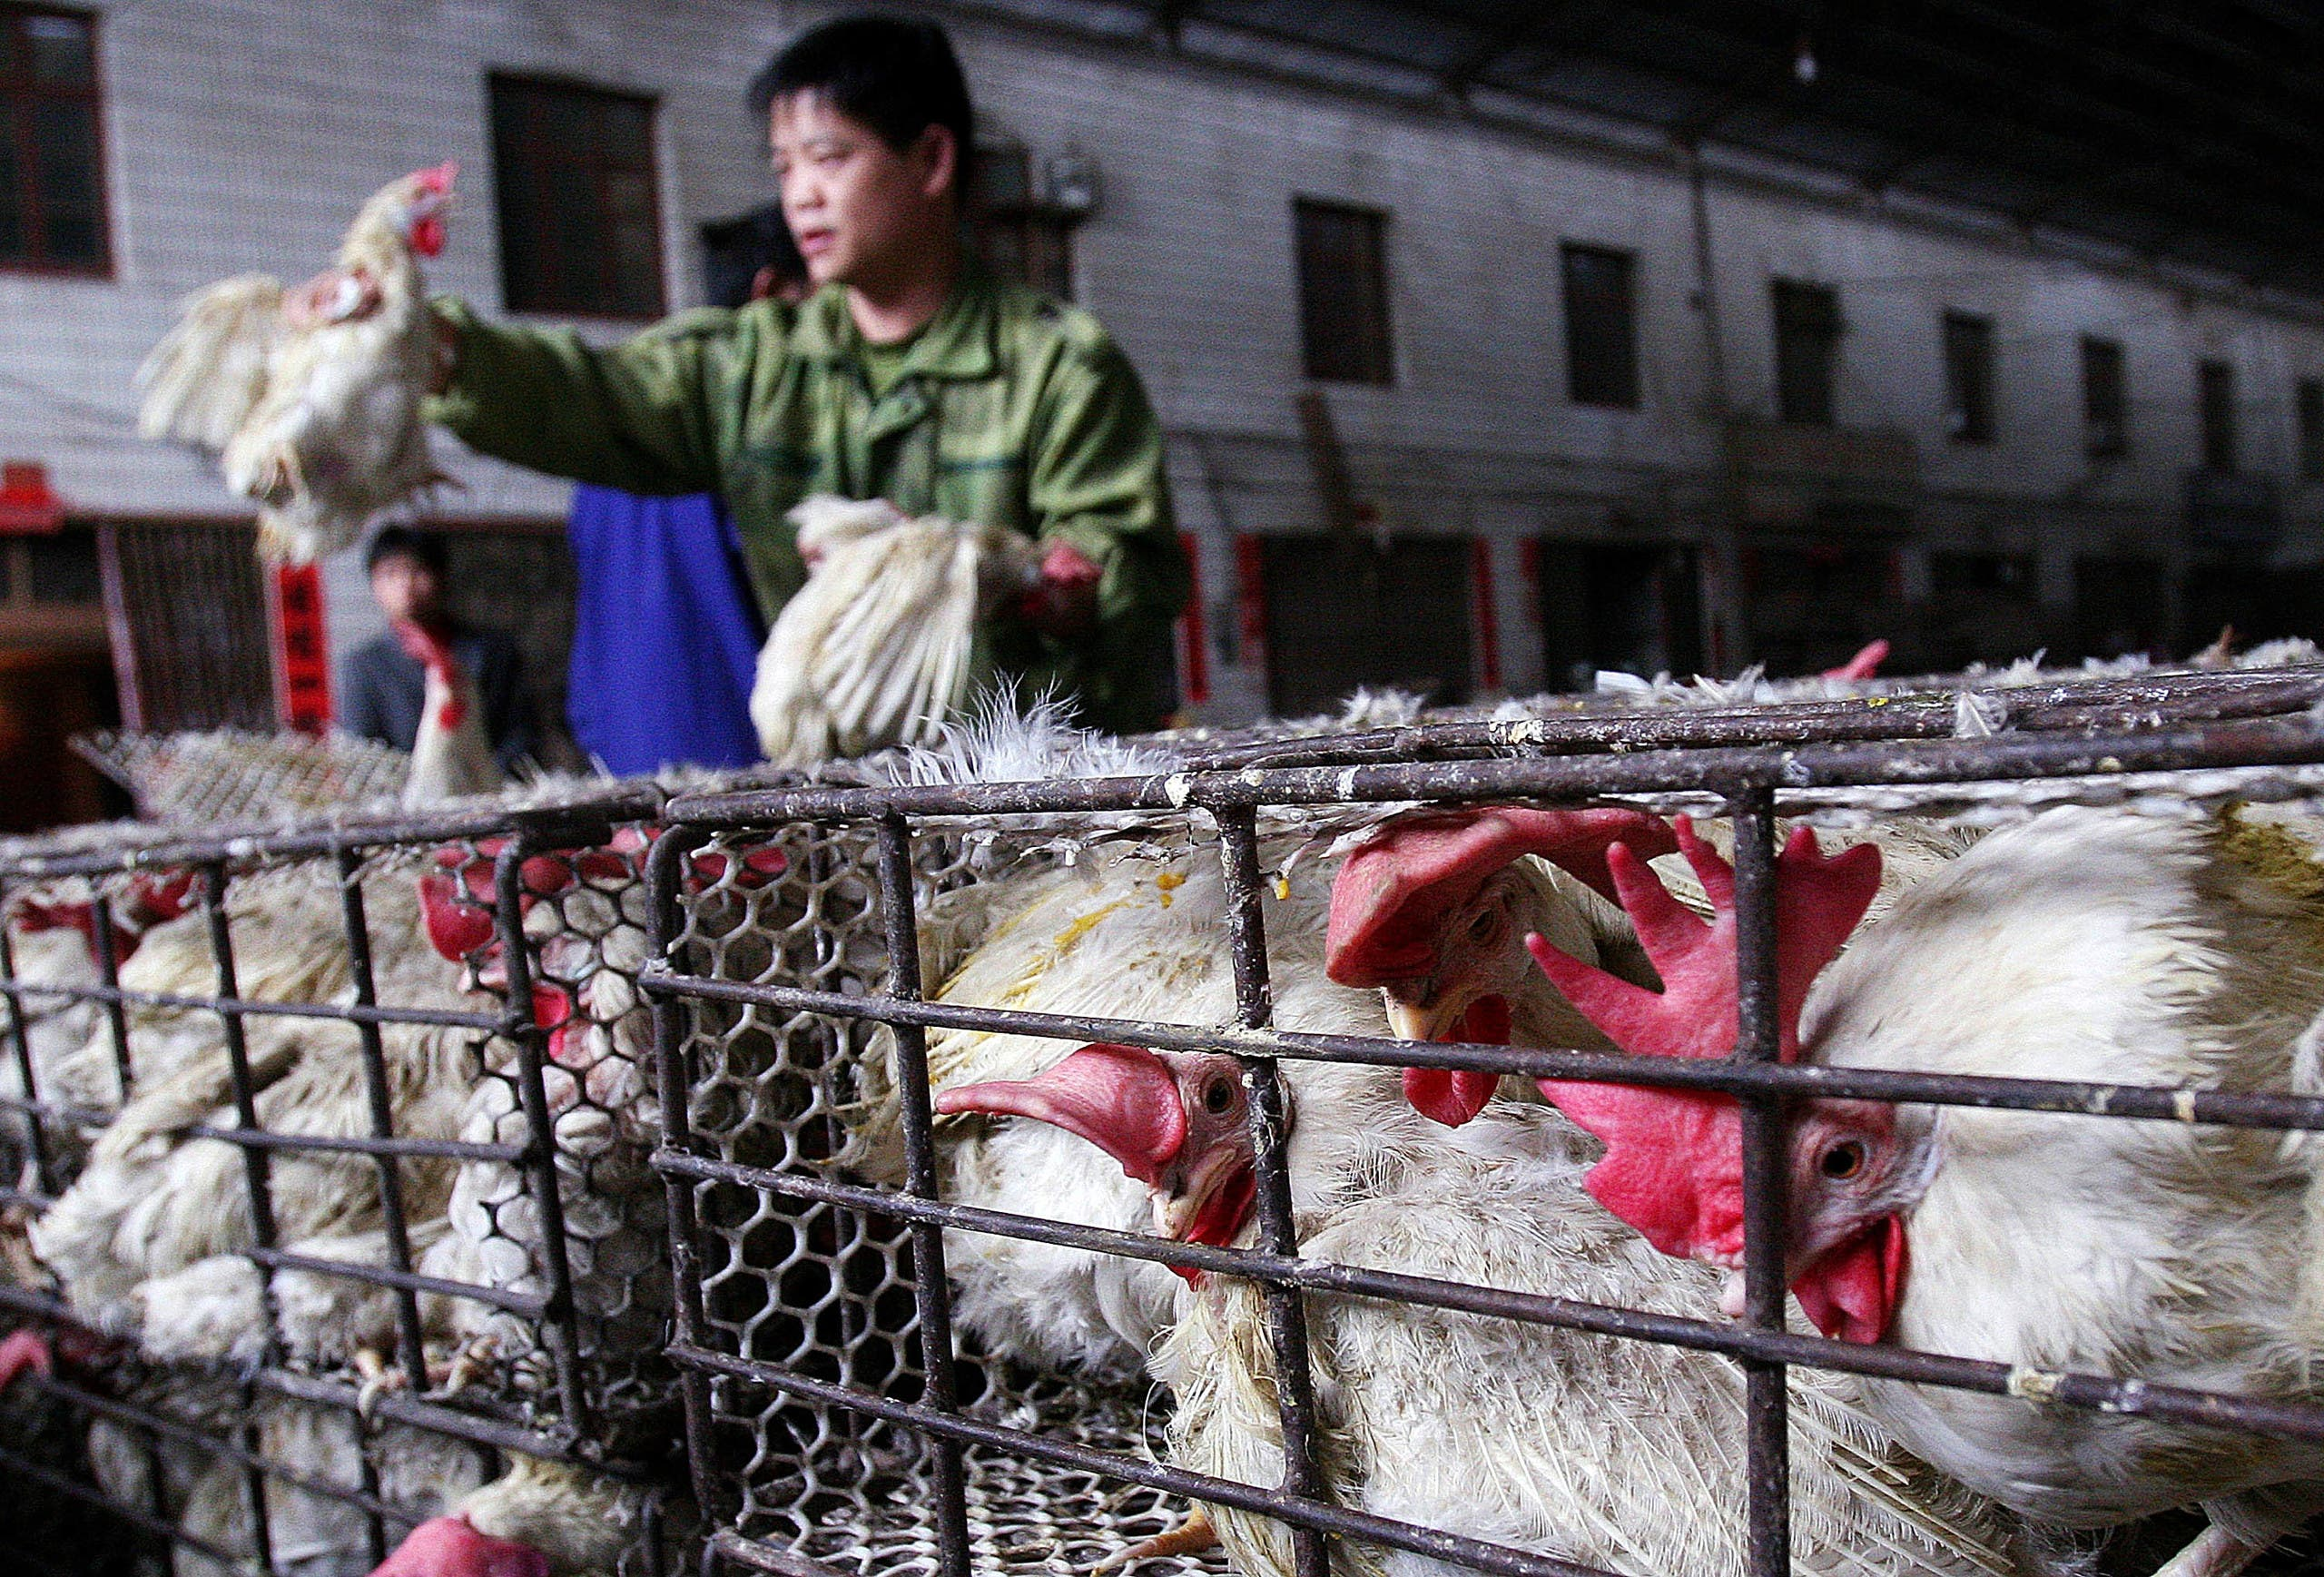 A Chinese vendor handling chickens at a poultry market in Wuhan, central China's Hubei province. (File photo: AP)